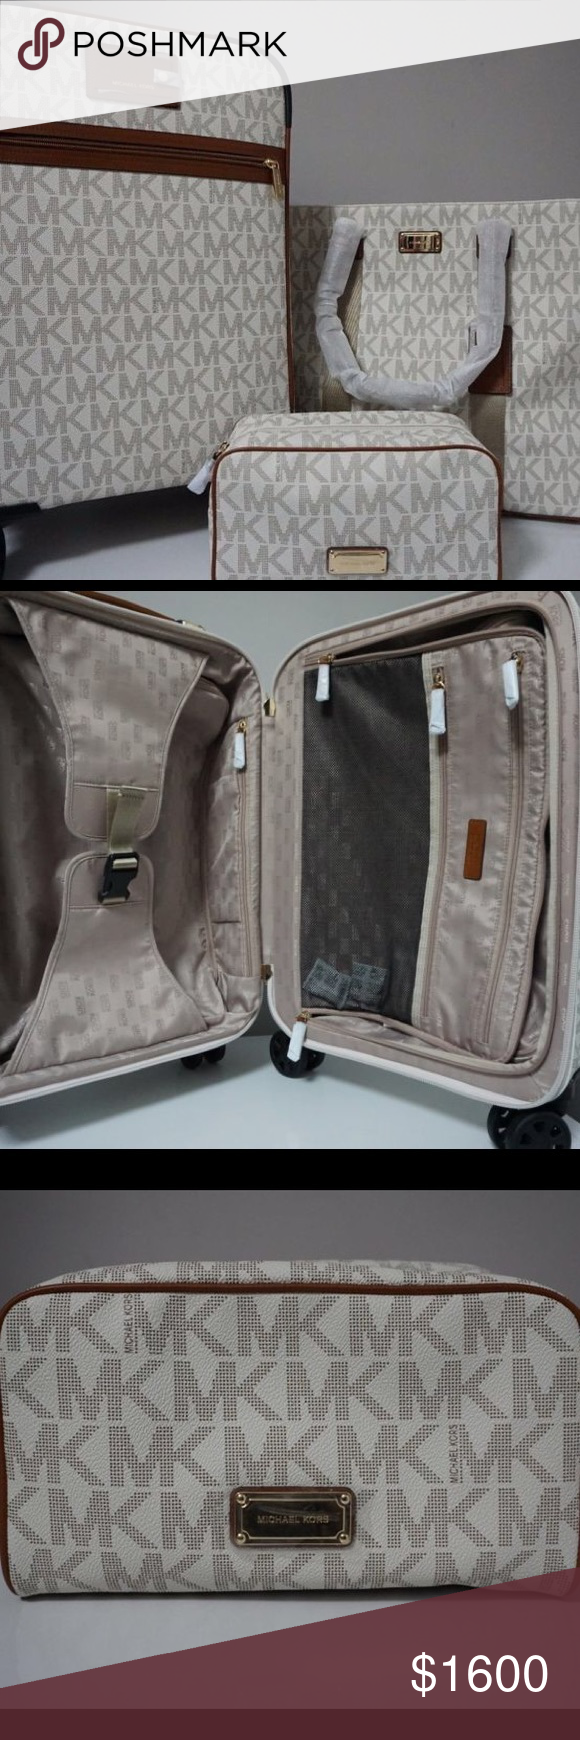 f5b3123d8509 Michael kors 3 piece MICHAEL Michael Kors Signature Vanilla Travel Trolley,Tote  & Pouch Luggage Set Michael Kors Bags